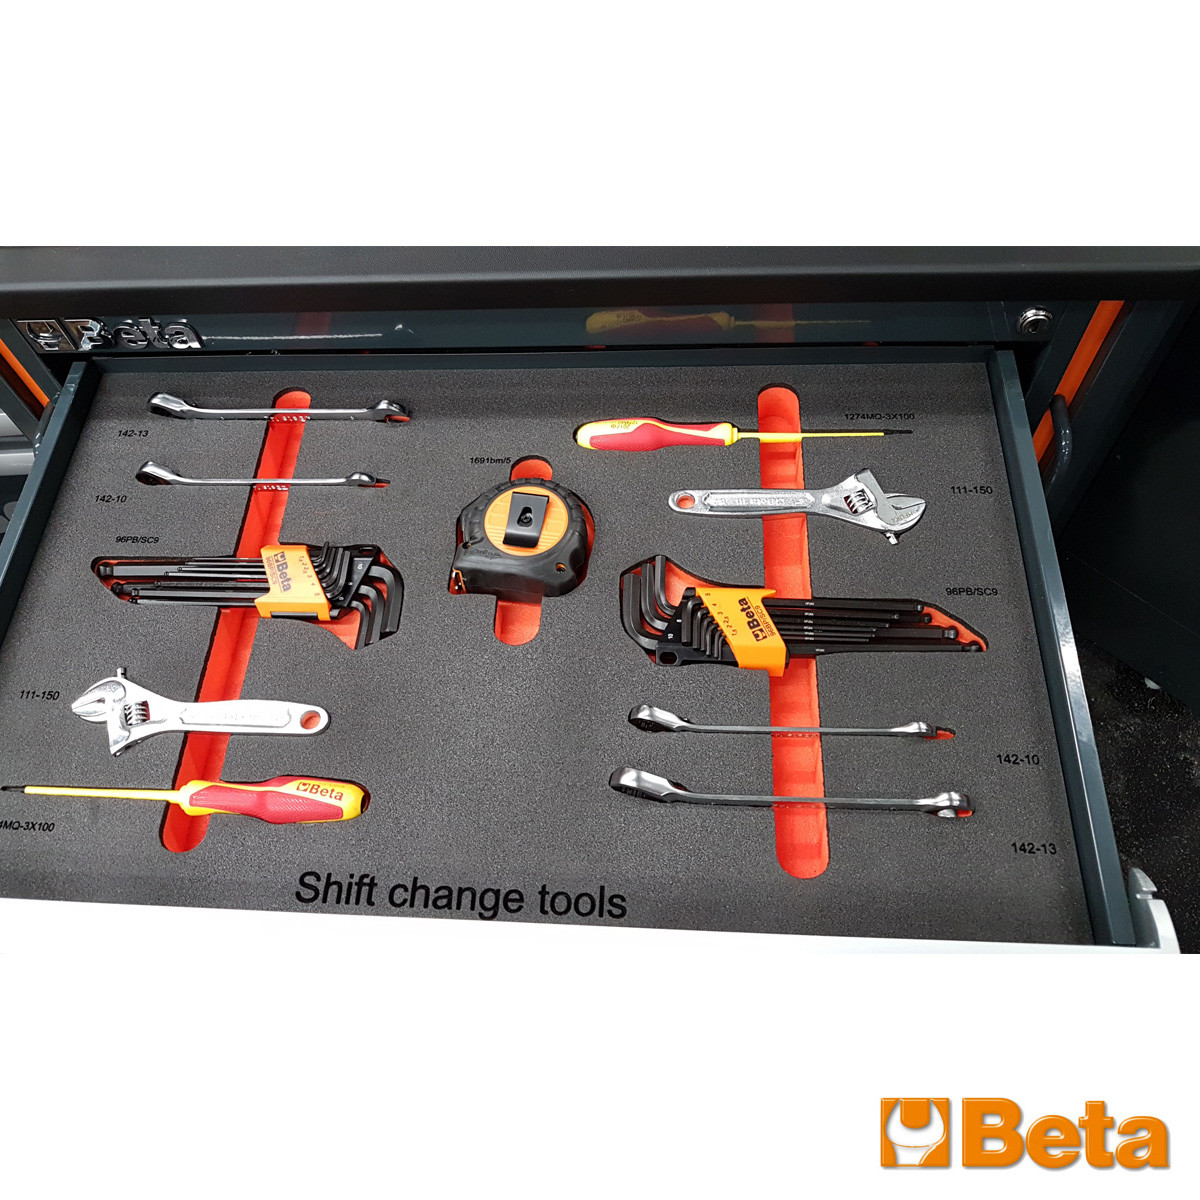 Beta Inlaid Shift Change Tools